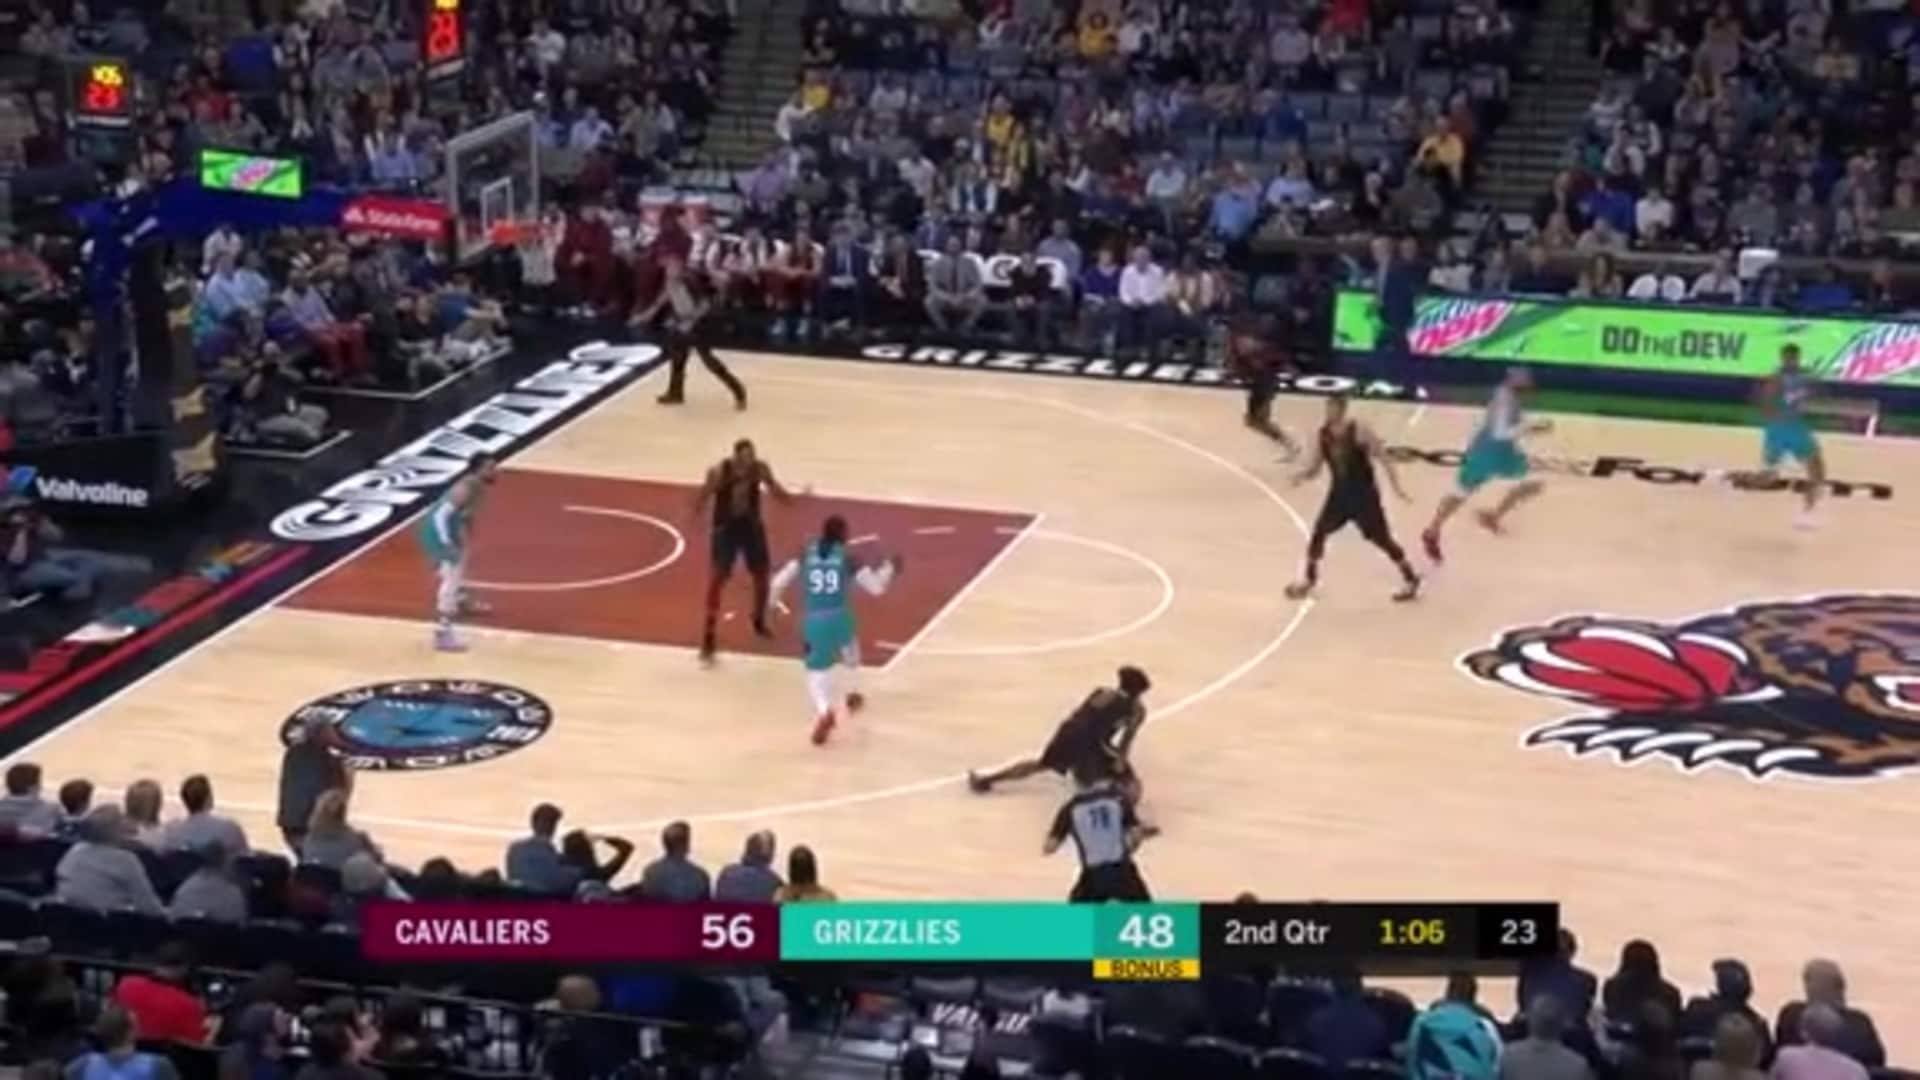 Jae Crowder capitalizes on his steal with a no-look assist